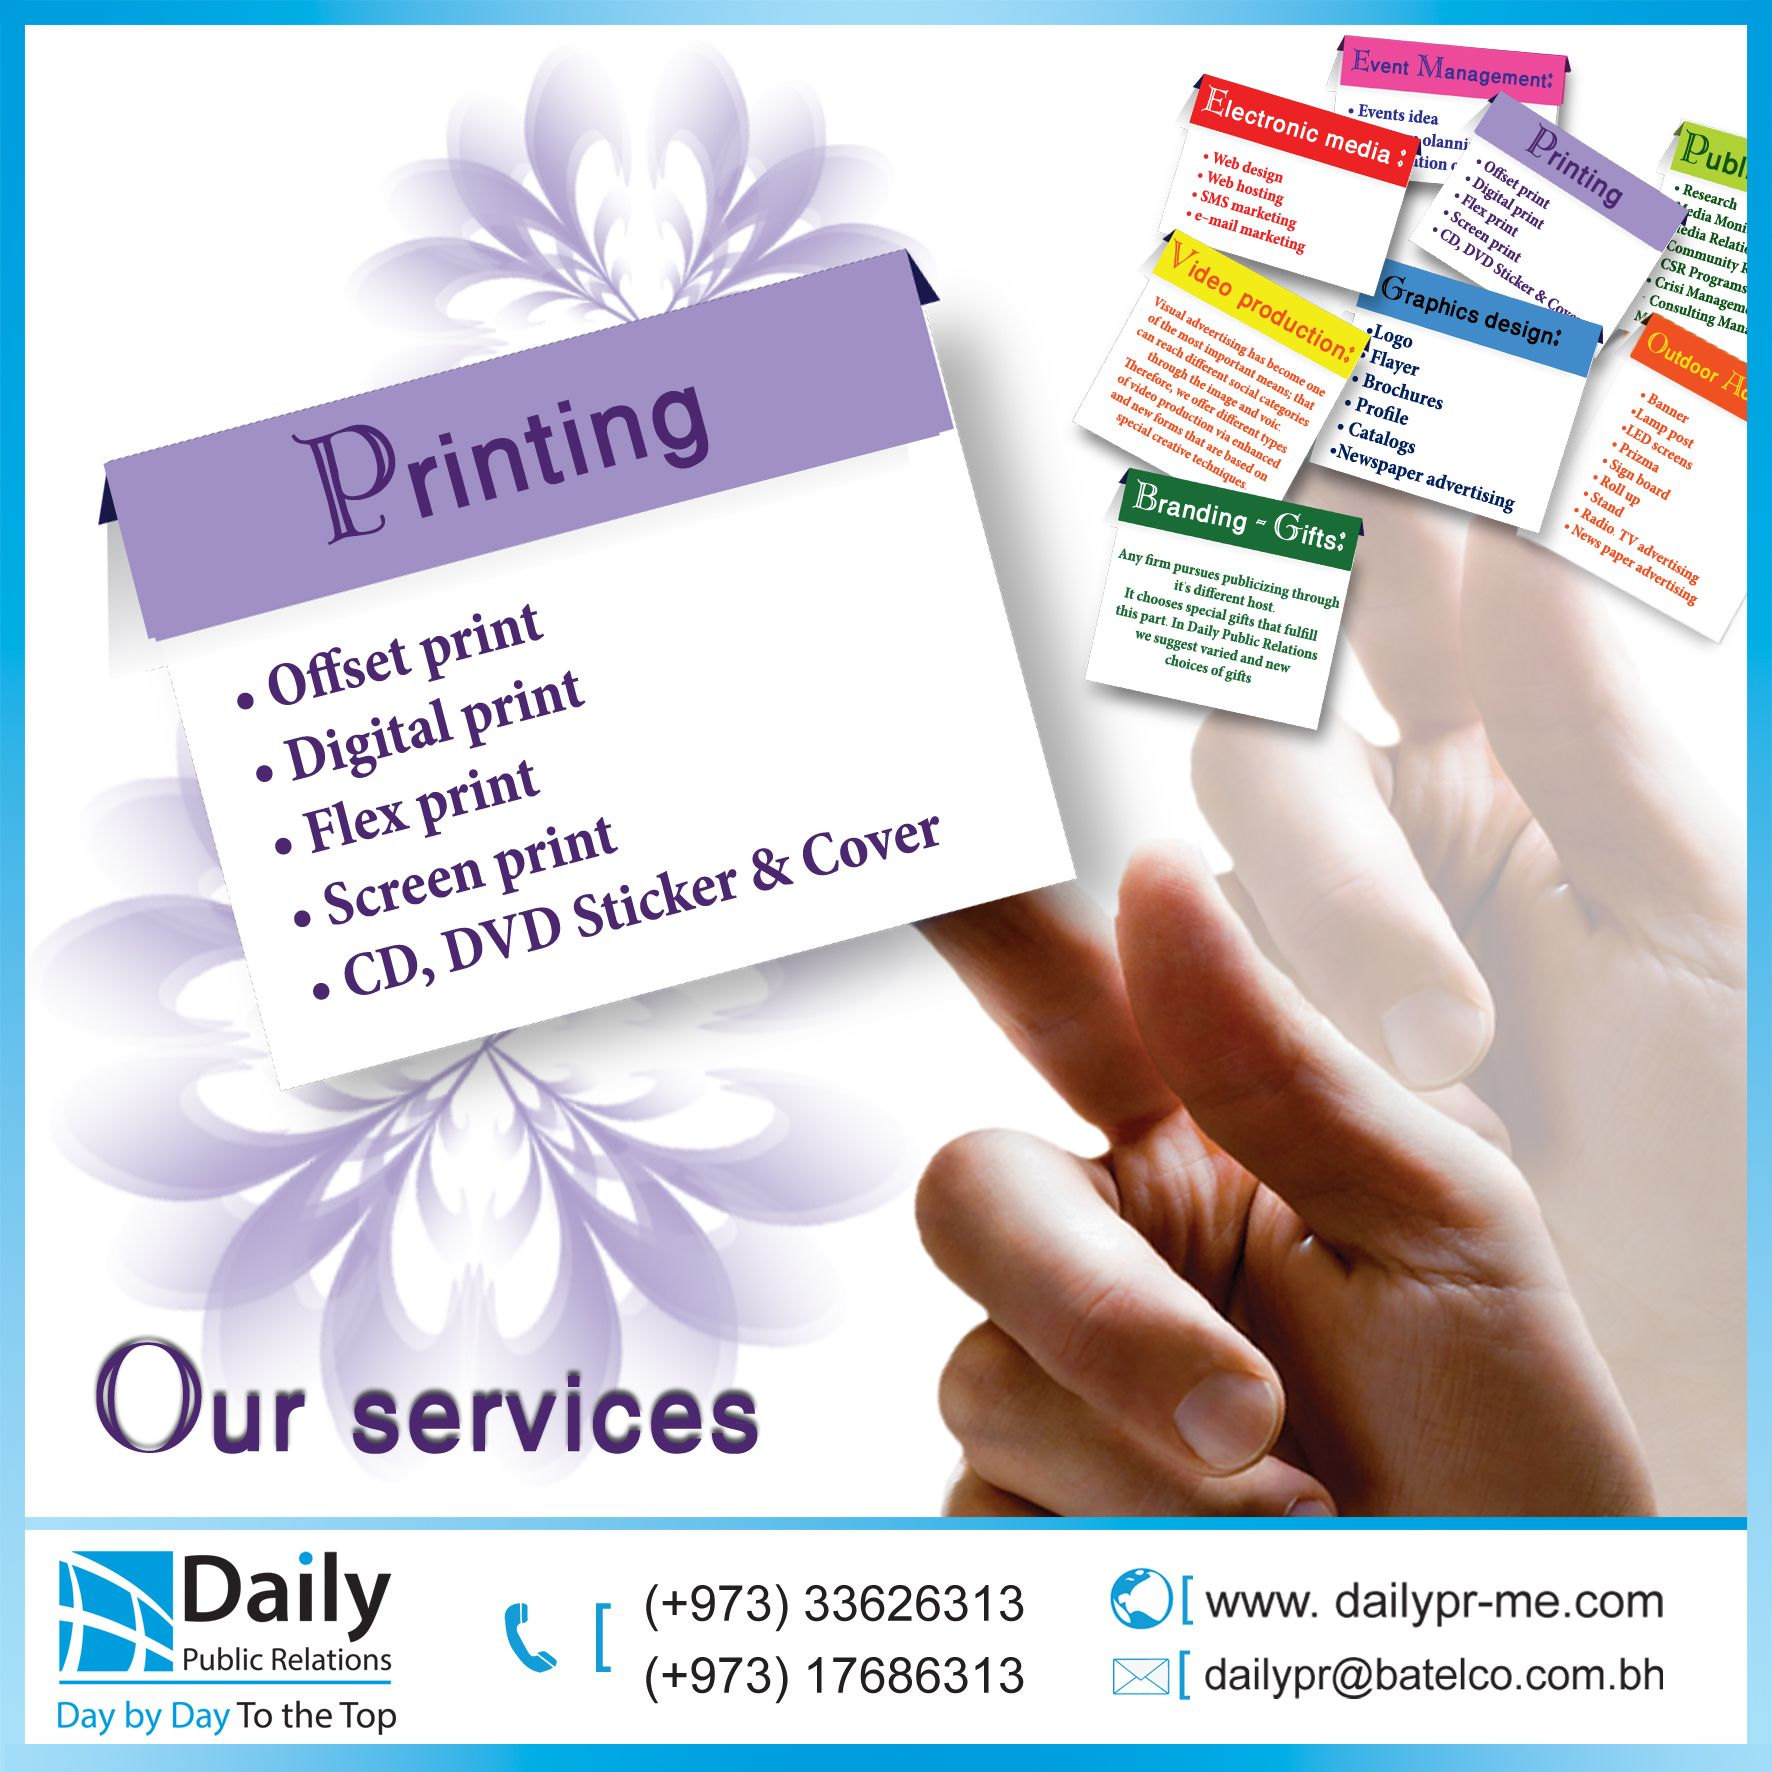 The Design Quality Appears In The Printing Quality With Its Different Types And Shapes Therefore We In Daily Public Re Print Gifts Printing Services Prints